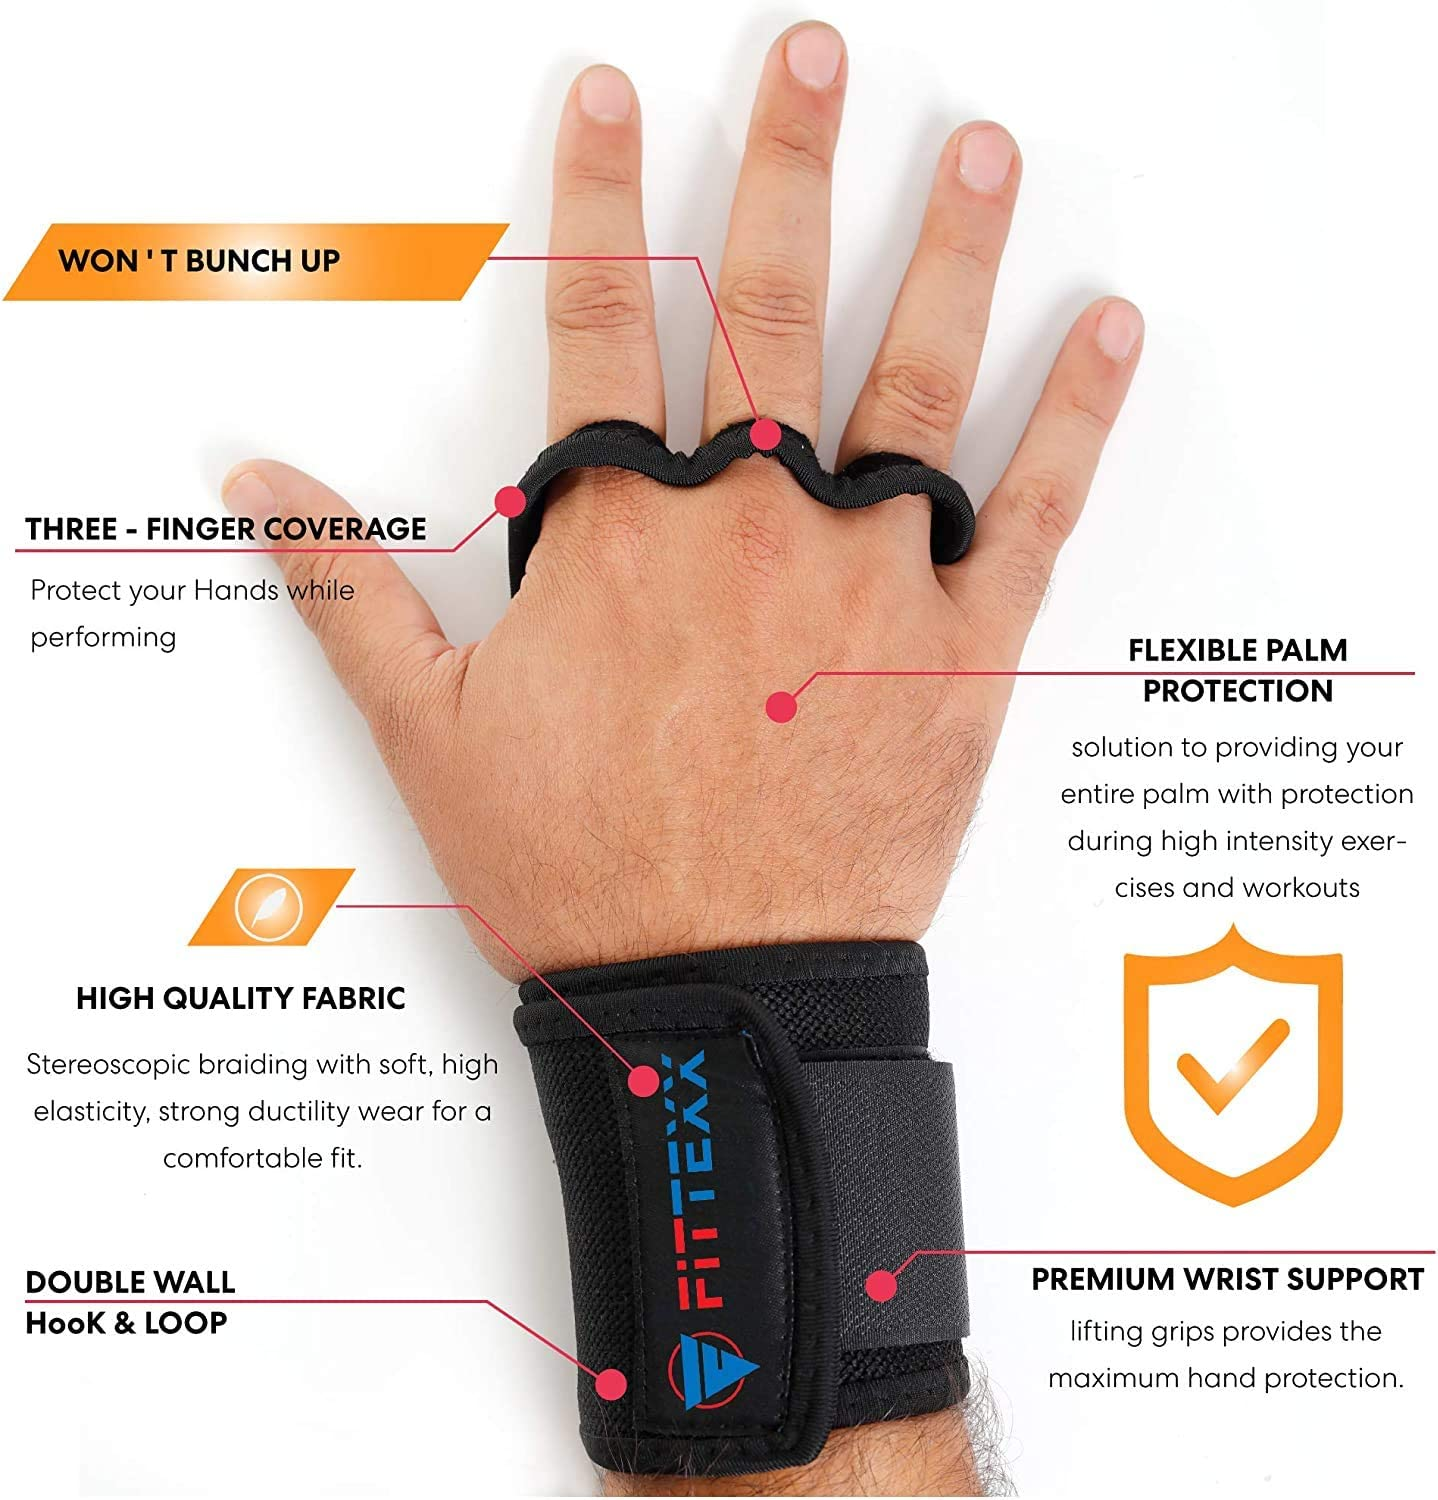 FITTEXX Workout Hand Grips Weightlifting Gloves for Men and Women Cross Training and Gymnastics Protection Gloves Blister Hand Protection 3-Finger Coverage Durable Comfortable